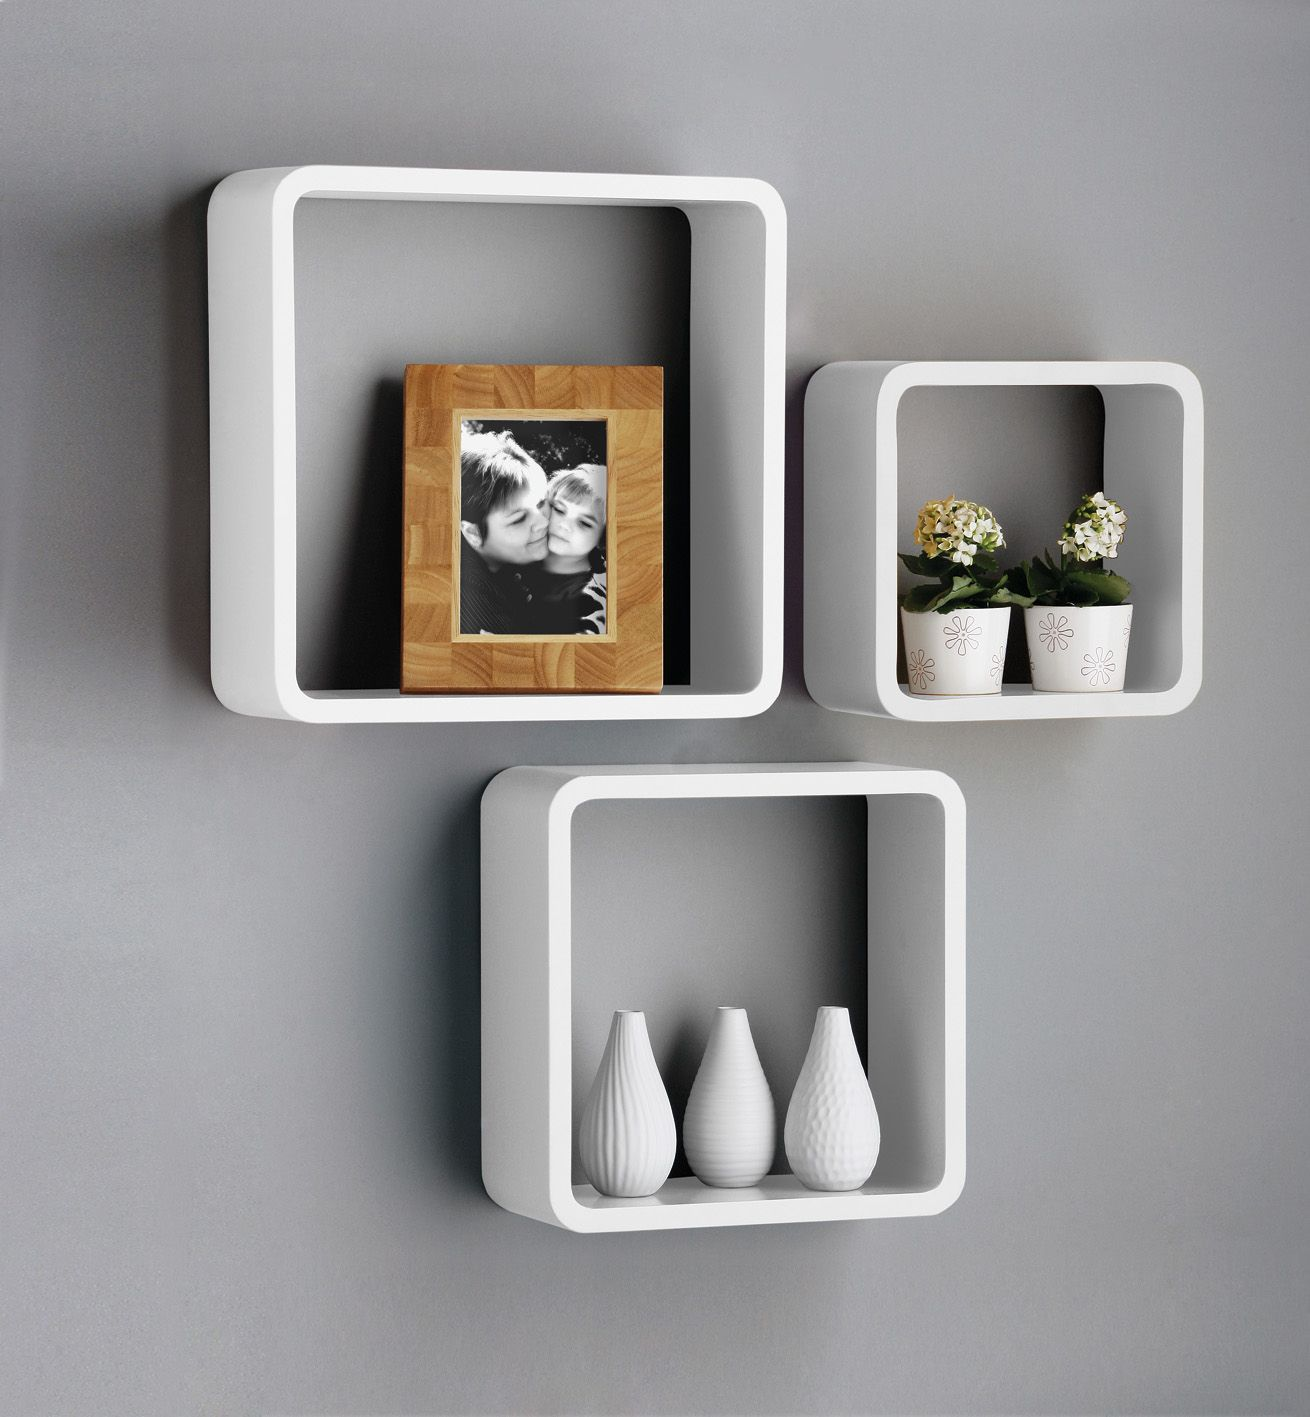 Shelves On The Wall New Set Of 3 White Black Square Floating Cube Wall Storage